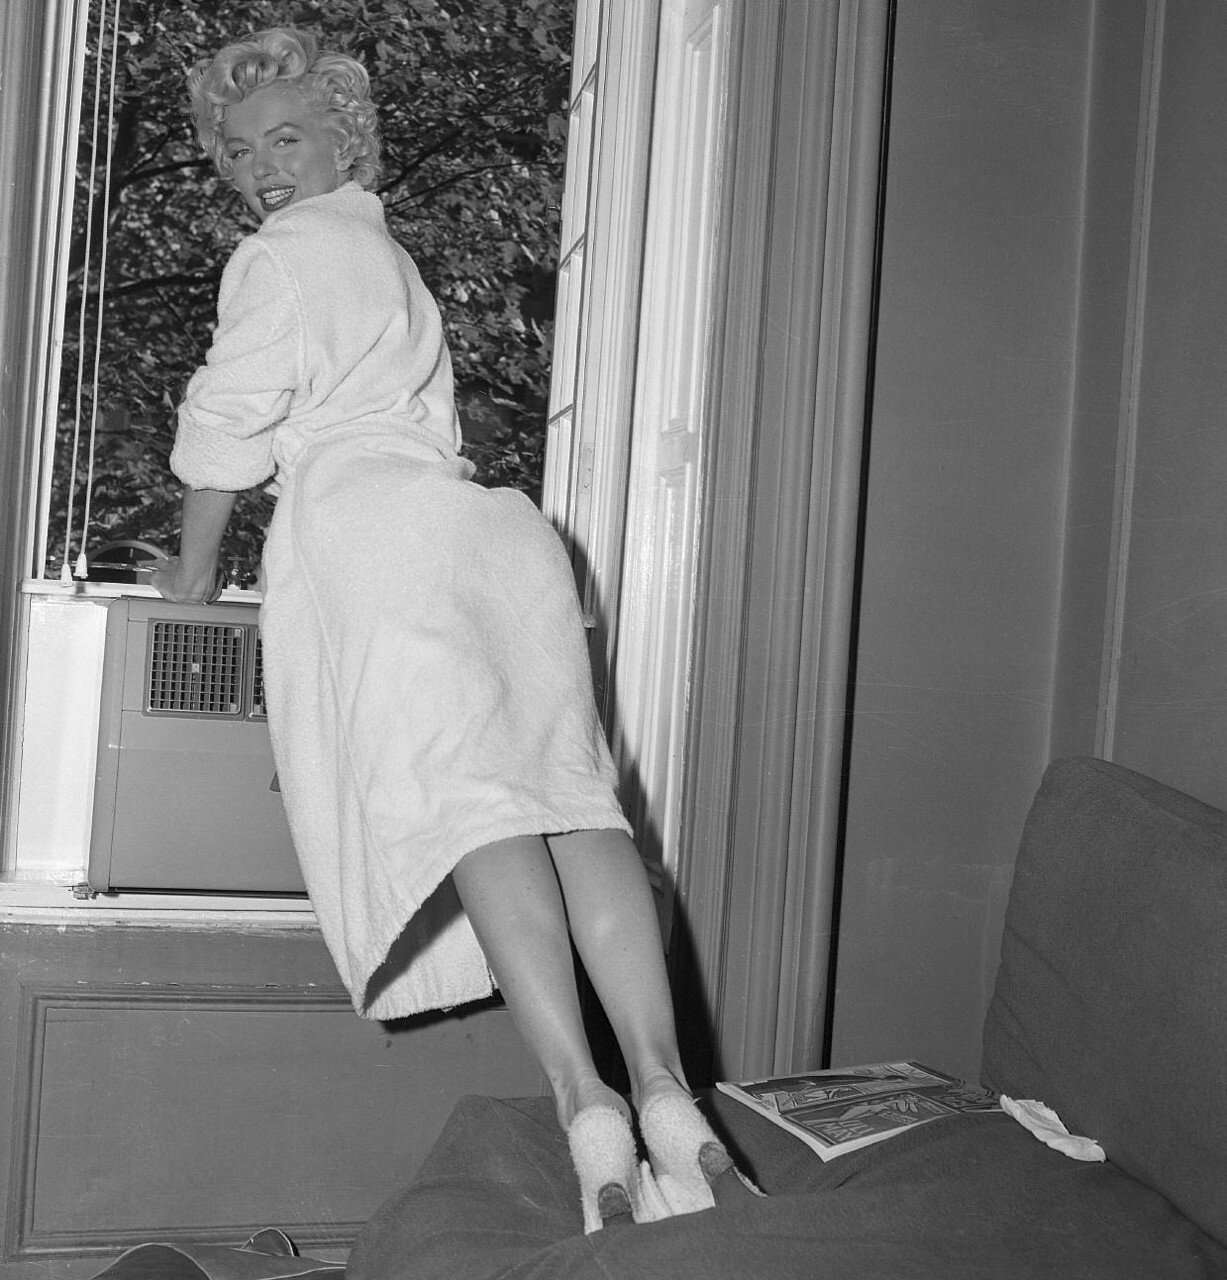 Mariyln Monroe Leaning on Window Sill